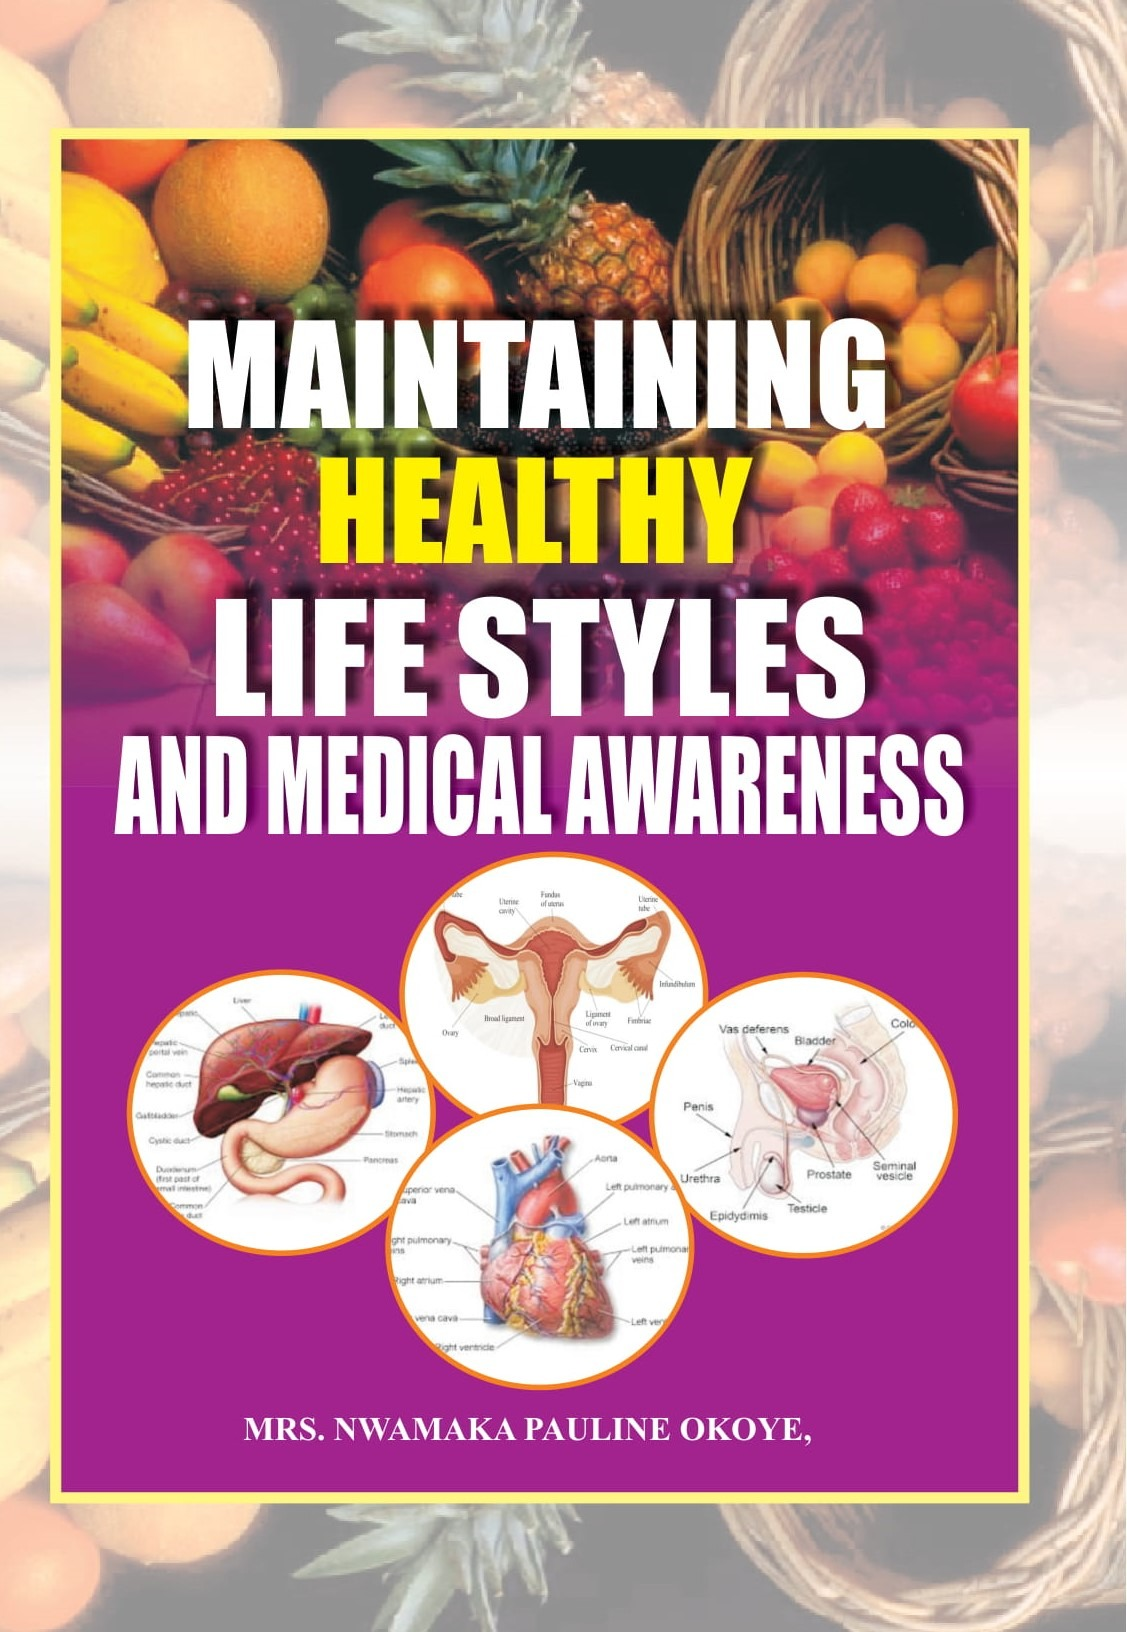 MAINTAINING HEALTHY LIFESTYLES AND MEDICAL AWARENESS